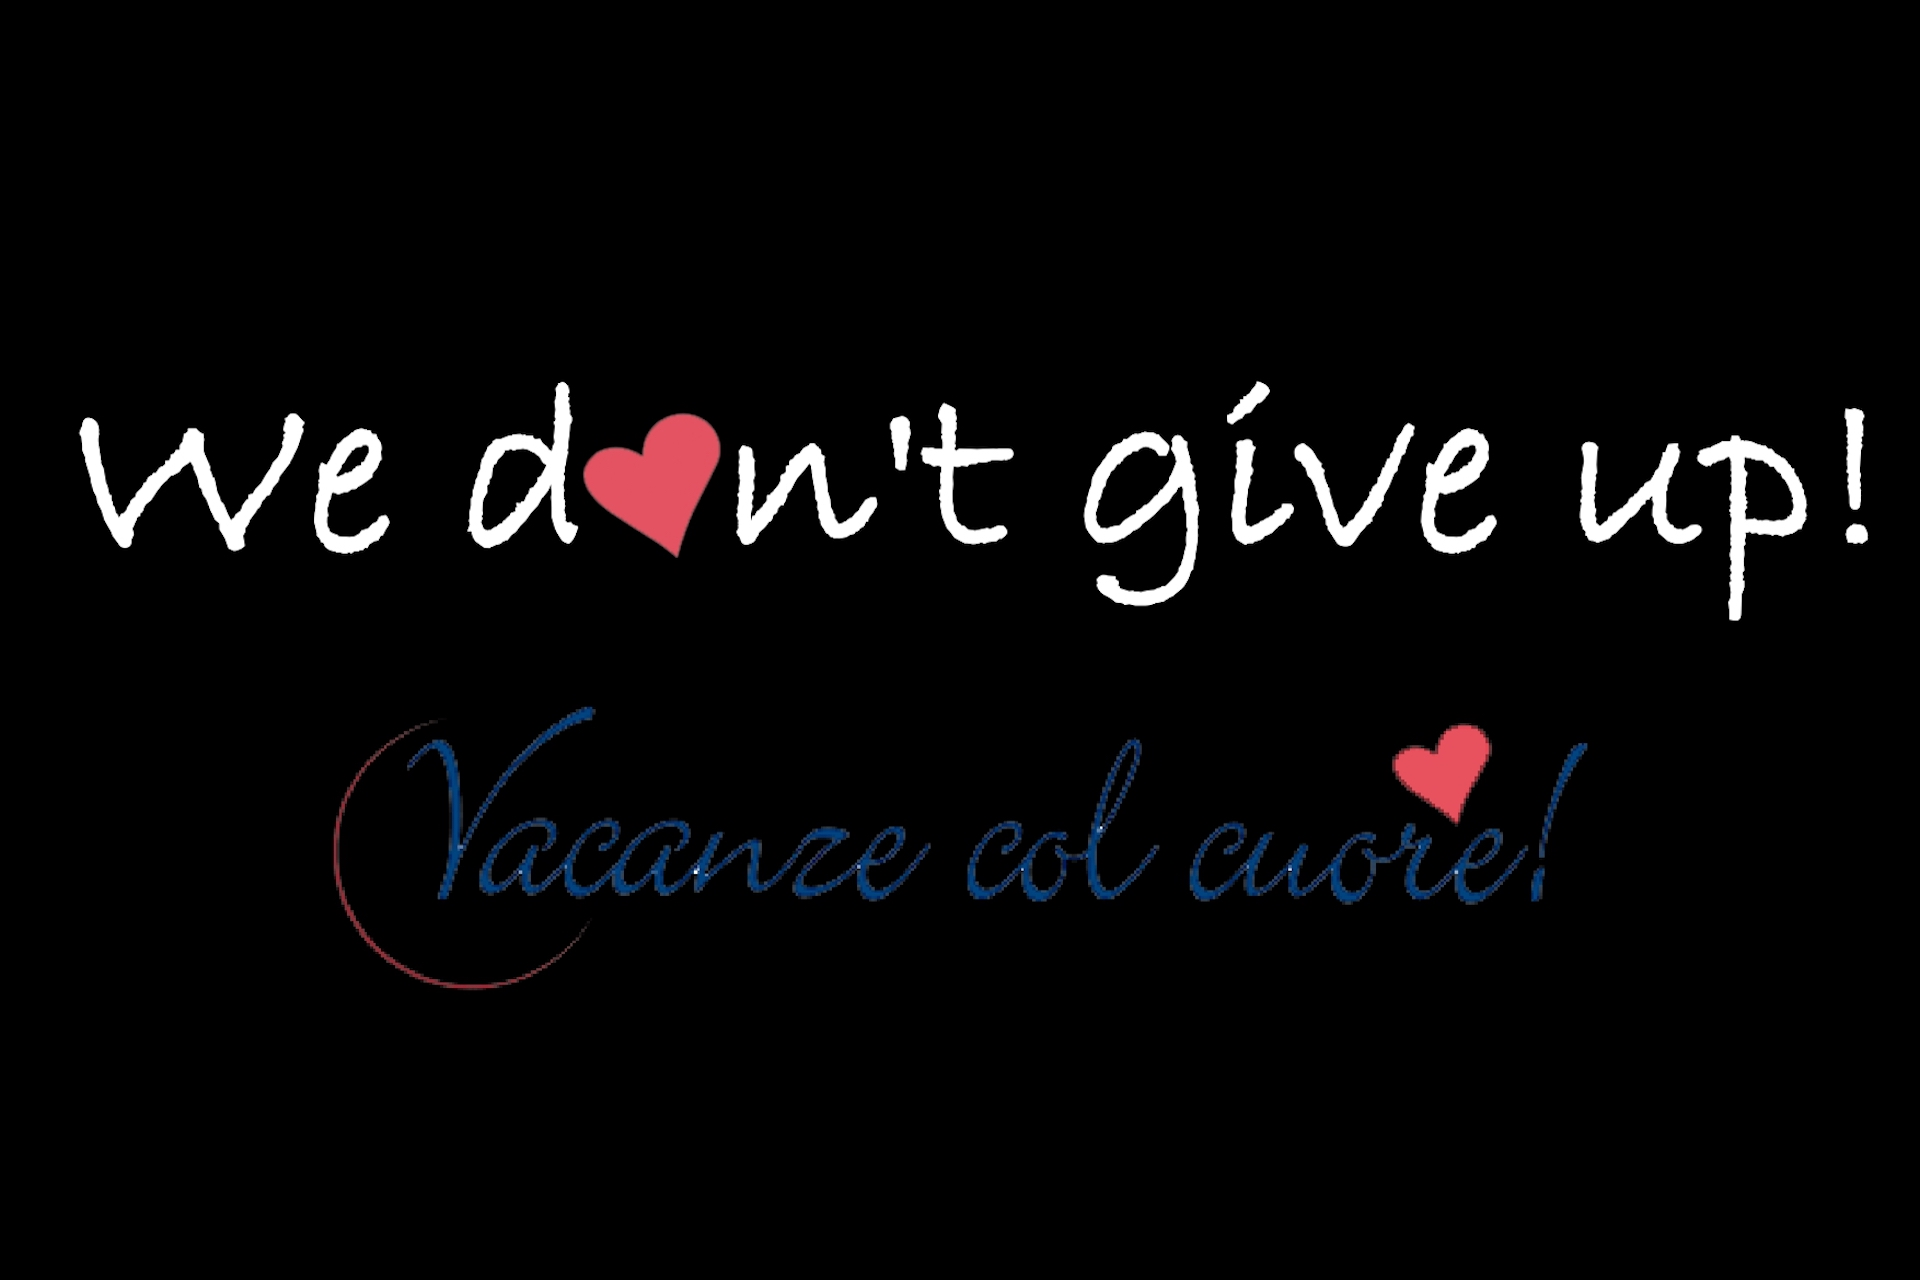 We don't give up ! - 1° parte